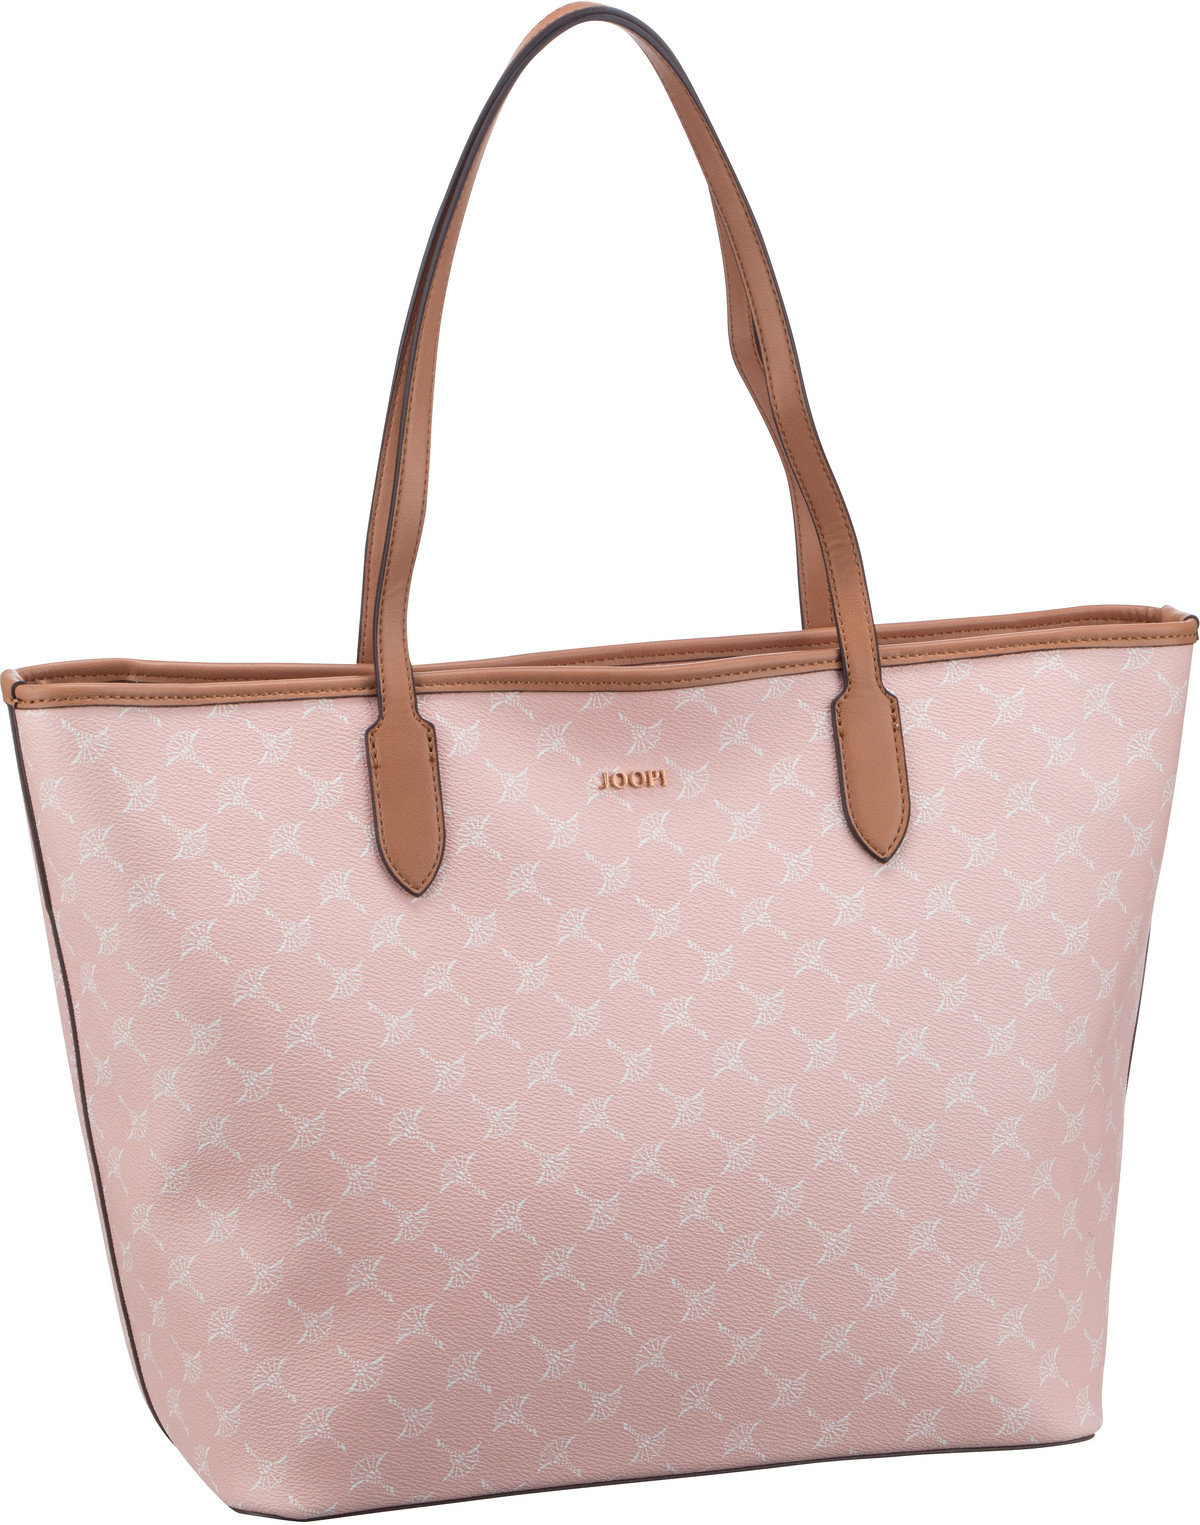 Handtasche Cortina Lara Shopper LHZ Light Pink